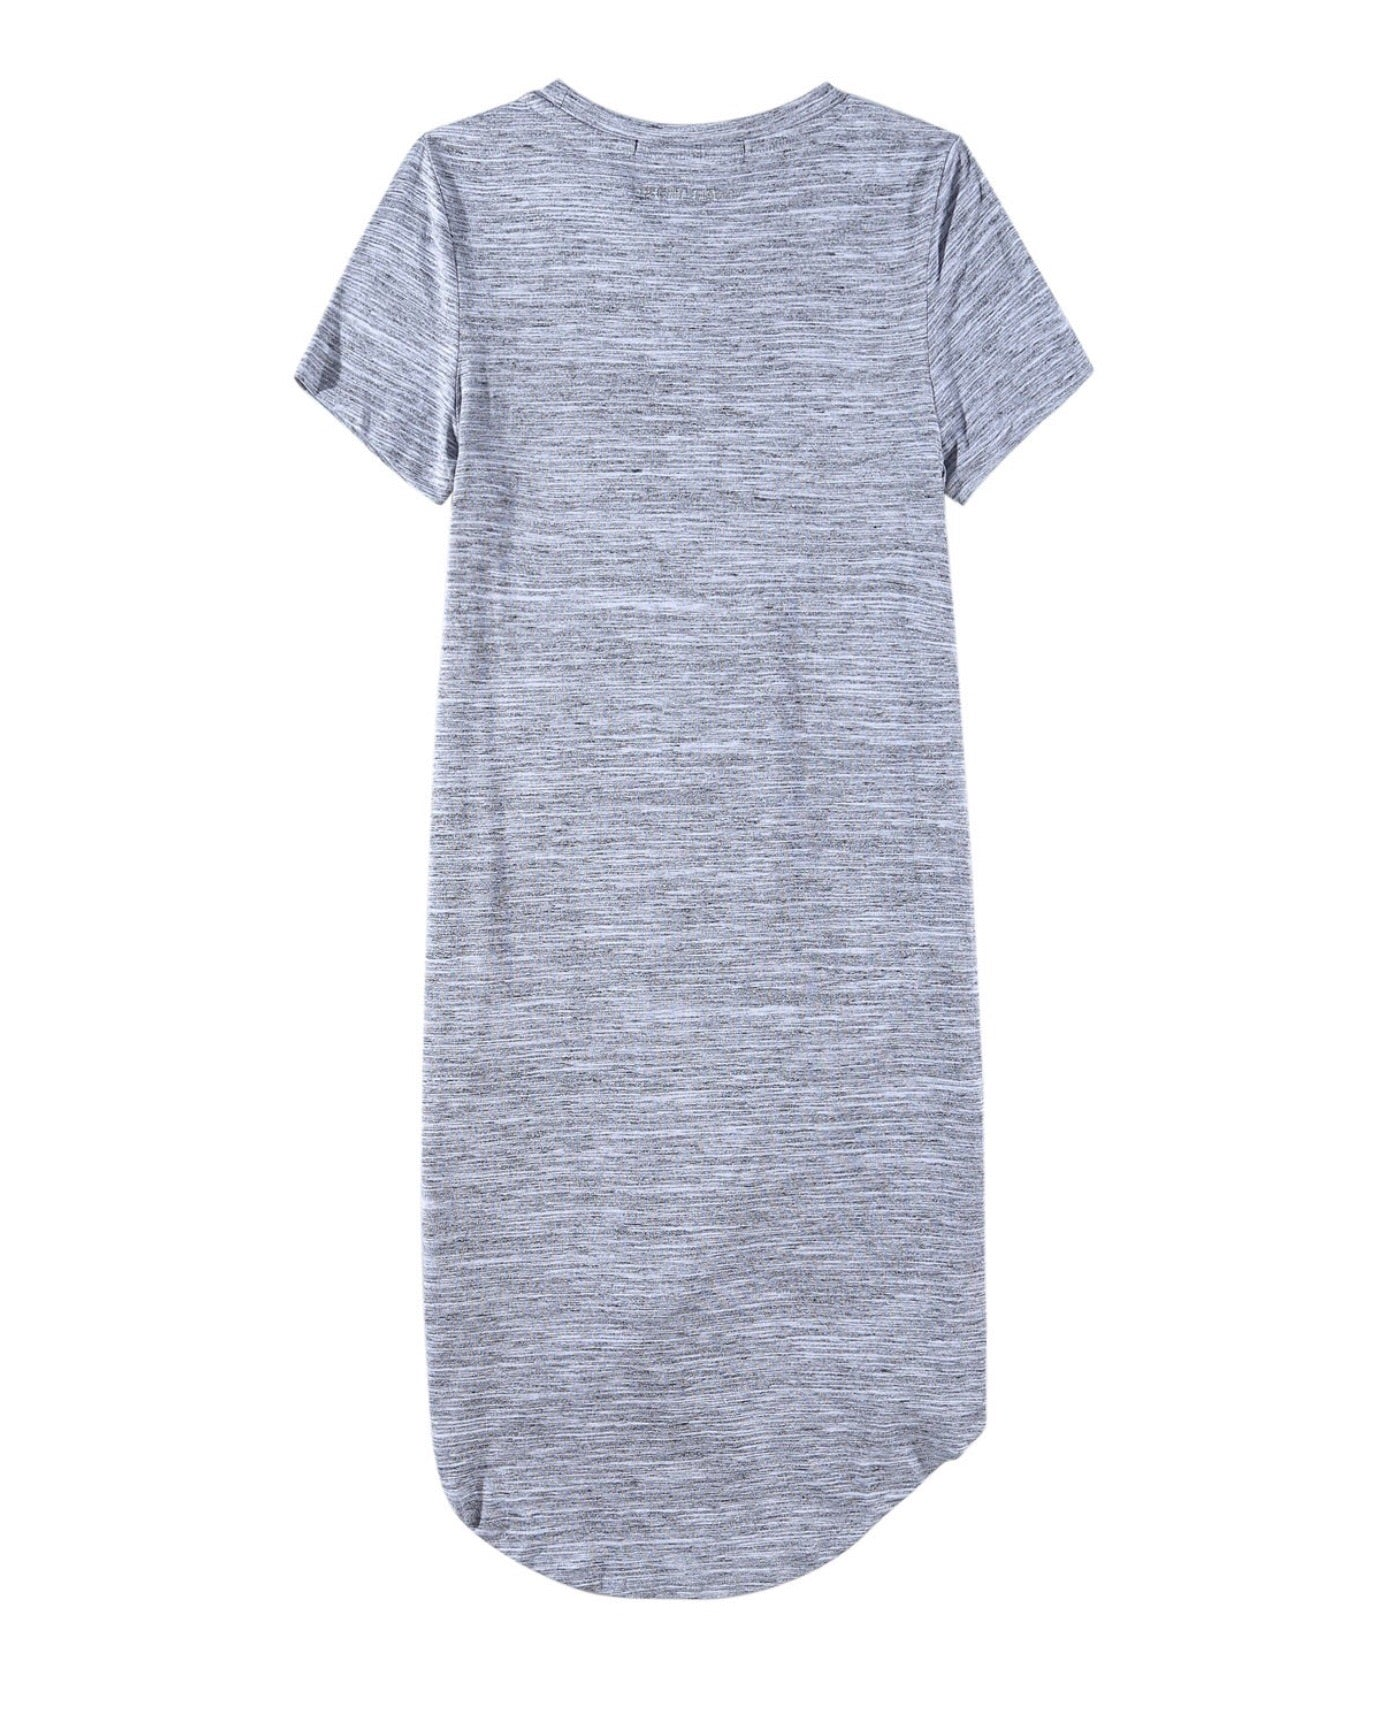 22be9390b7 SILENT THEORY - TWISTED TEE DRESS - GREY MARLE – Montaze The Entrance